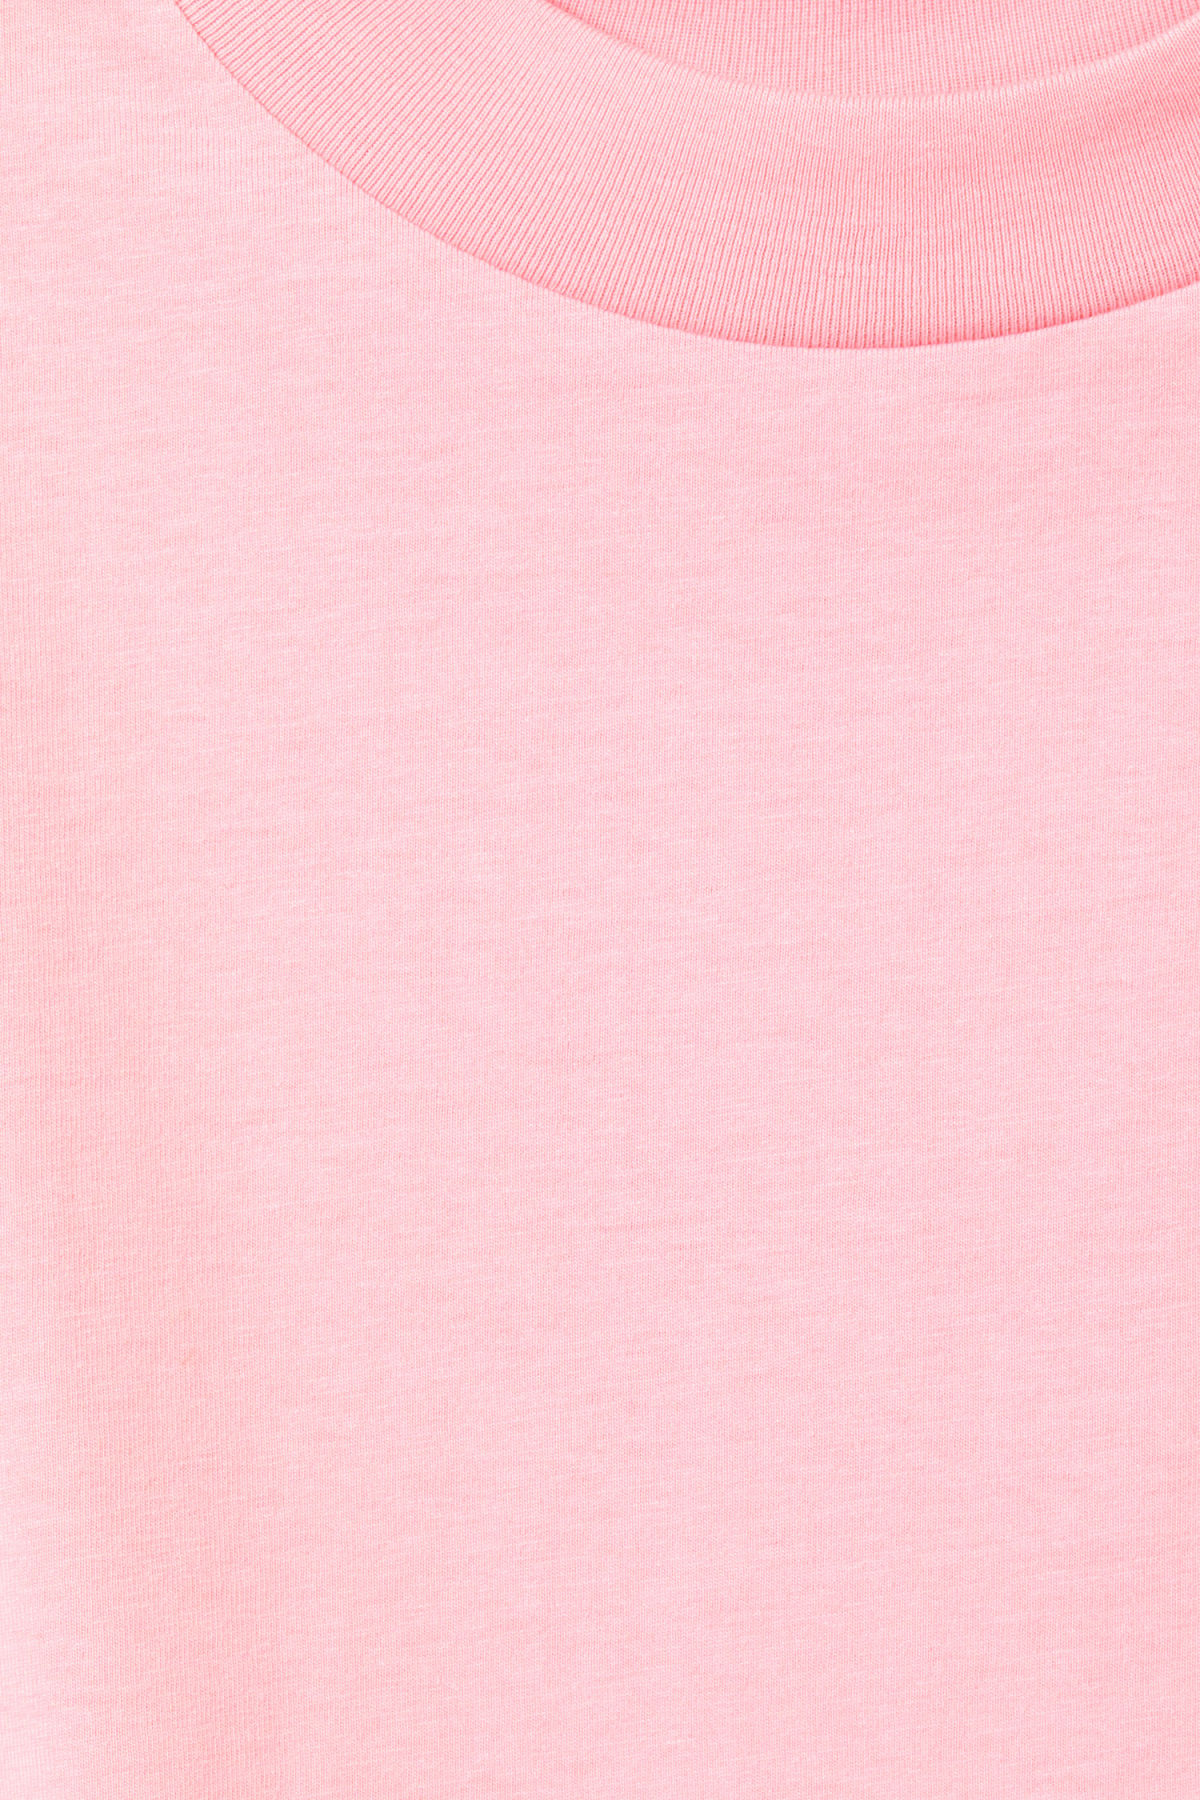 Detailed image of Weekday prime t-shirt in pink